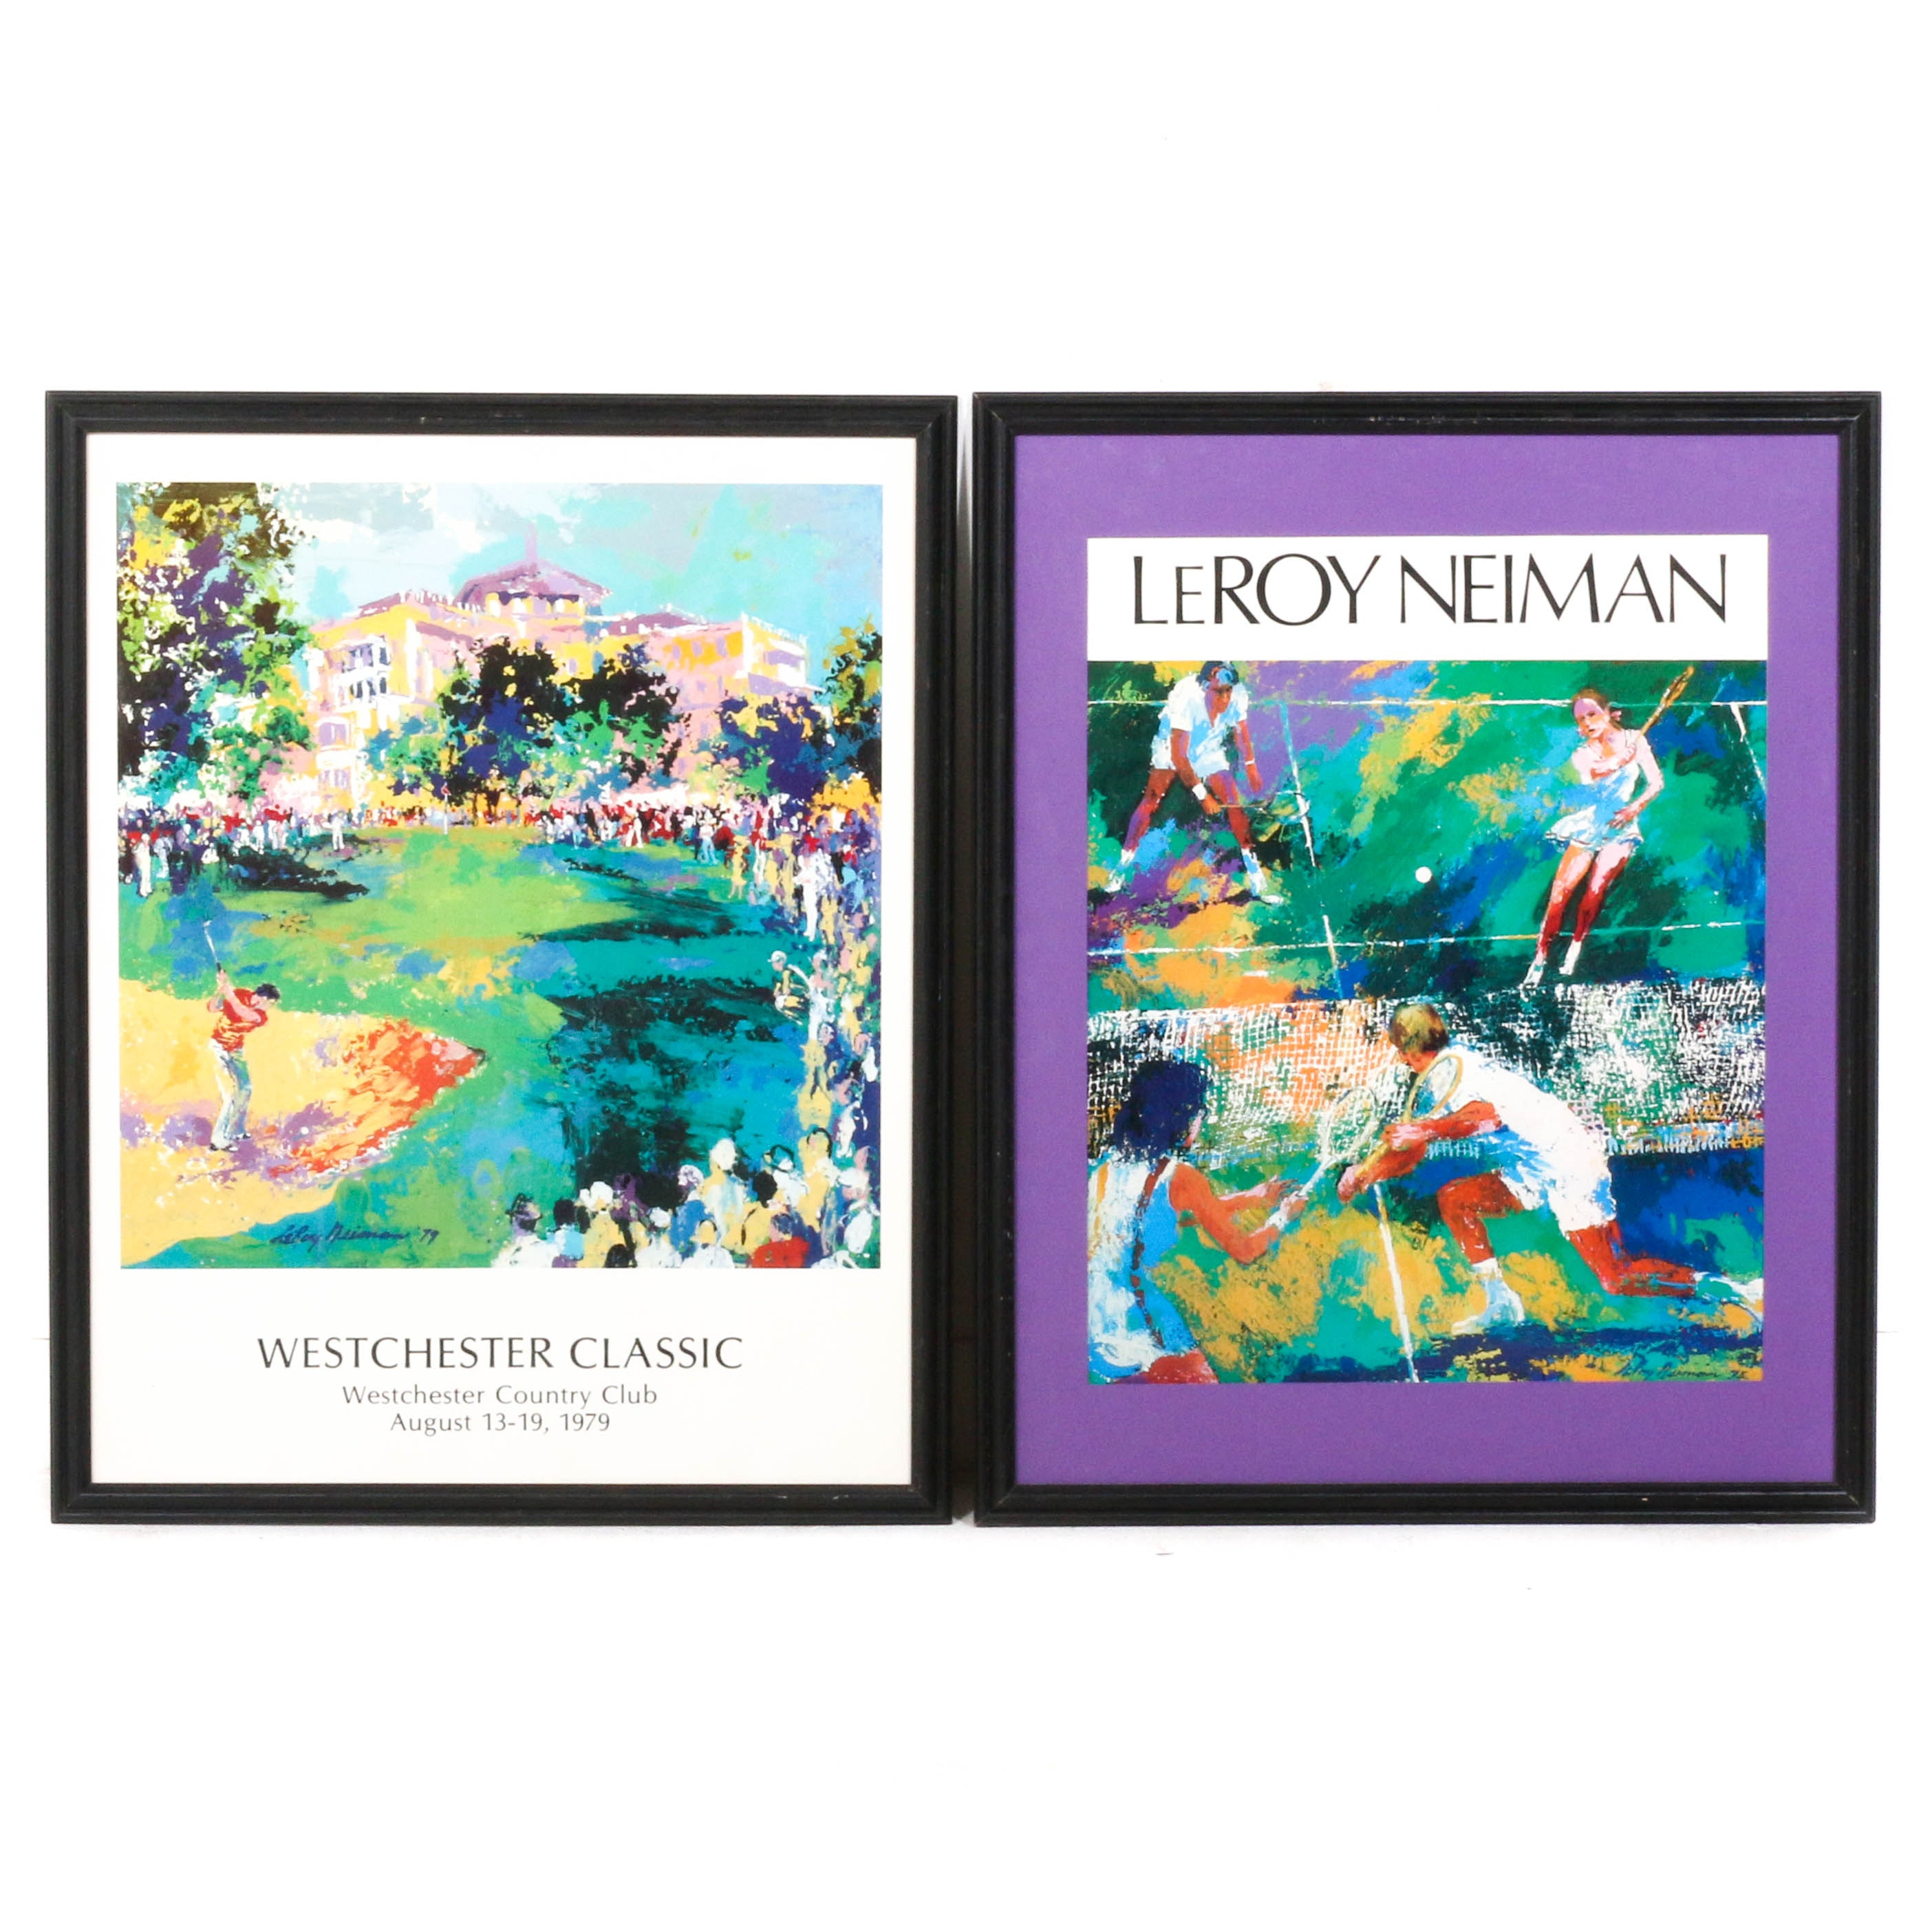 After LeRoy Neiman Offset Lithographs